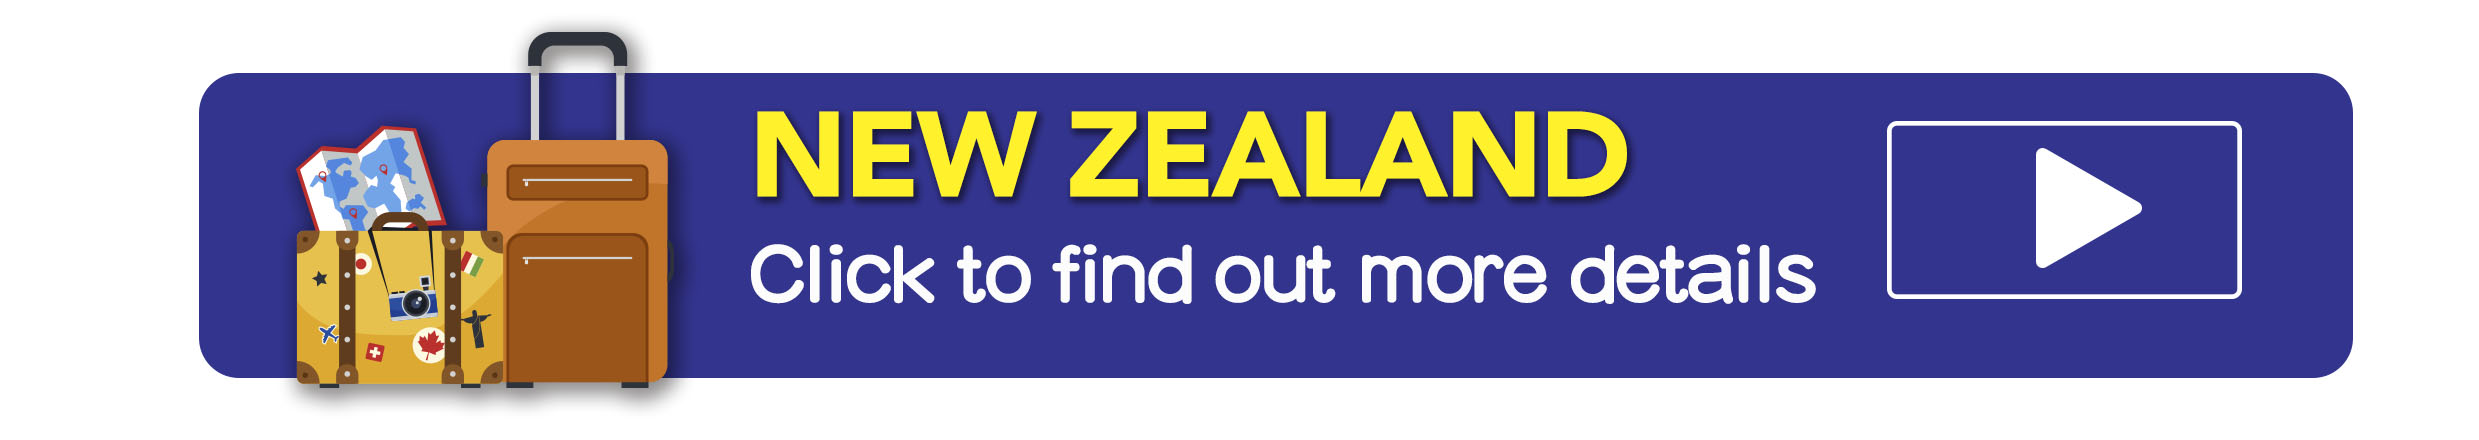 for more new zealand